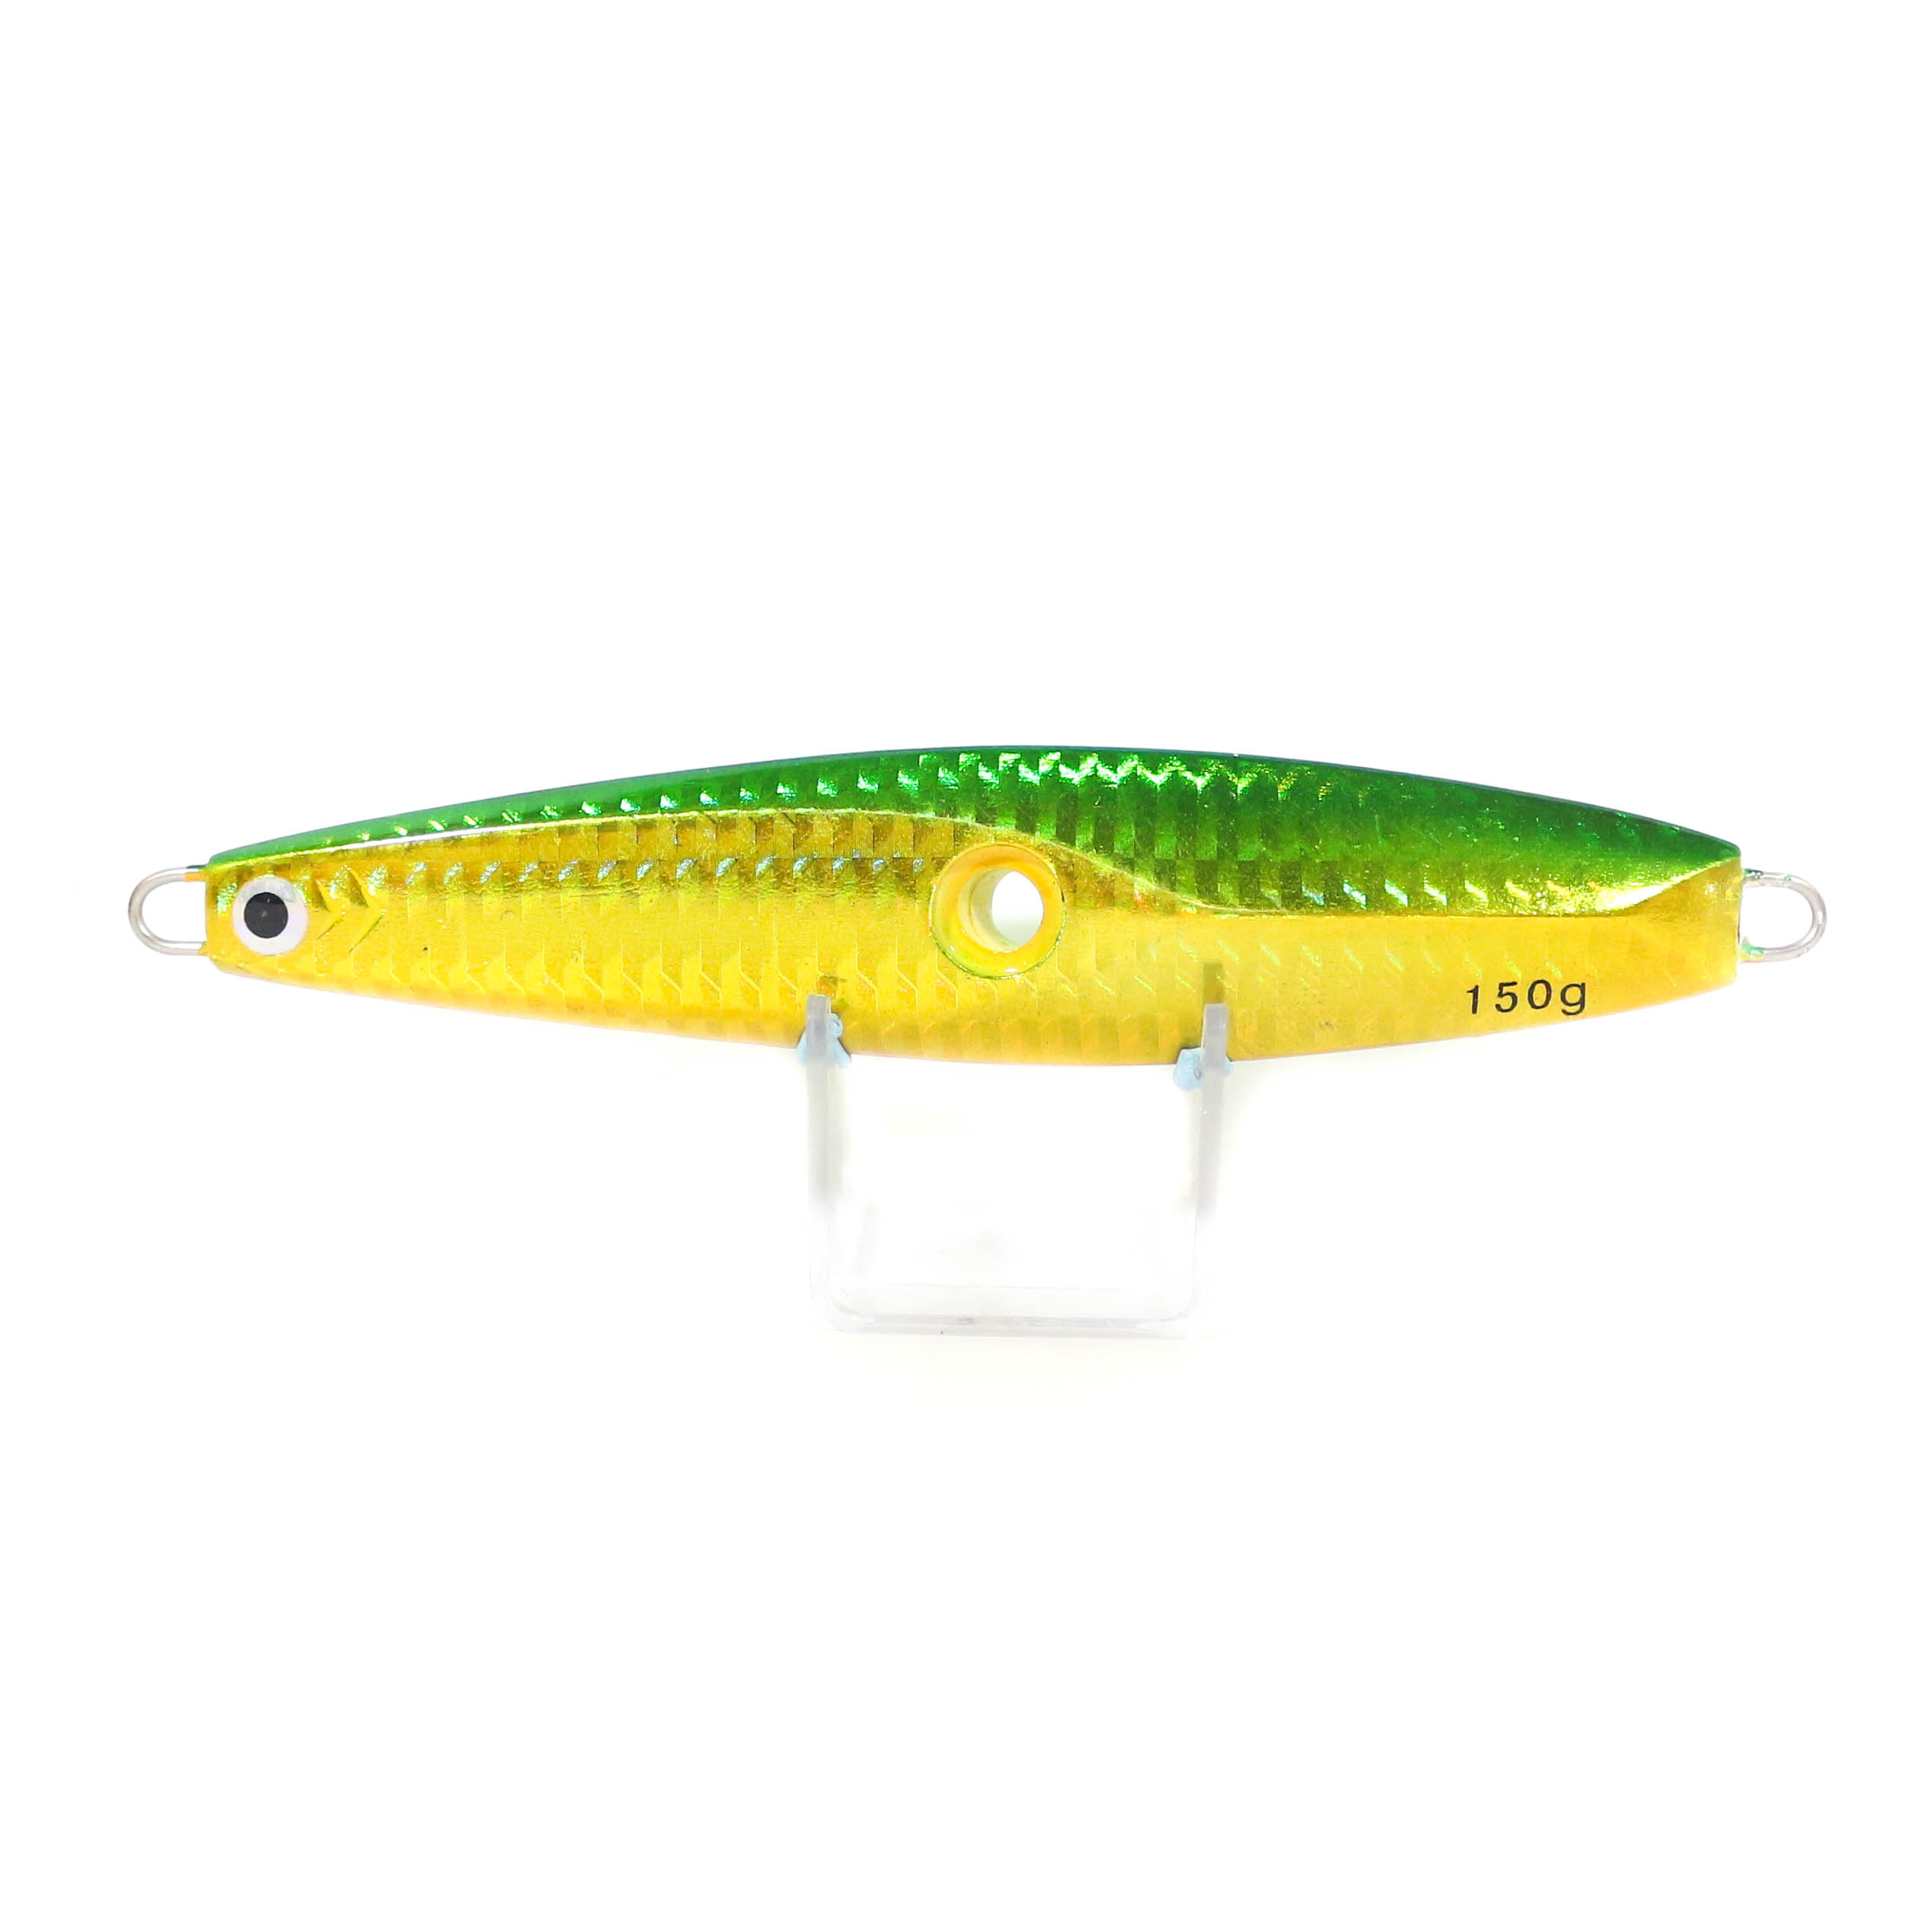 Metal Inchiku Jig Head 150 grams Green Flash (0011)